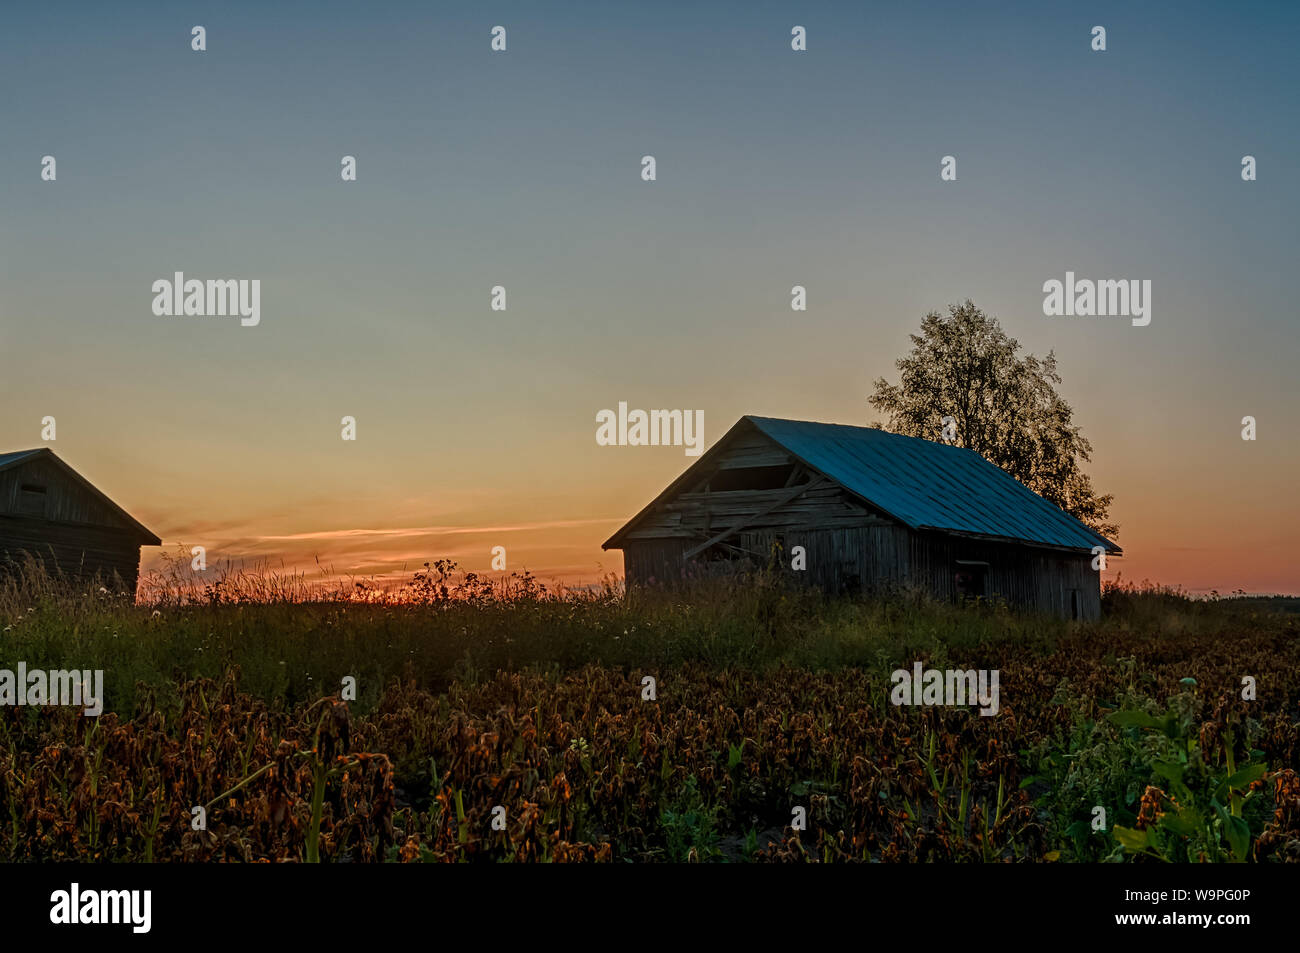 Old barn houses by a potato field on a late summer evening at the rural Finland. The sunset is coloring the night sky beautifully. Stock Photo